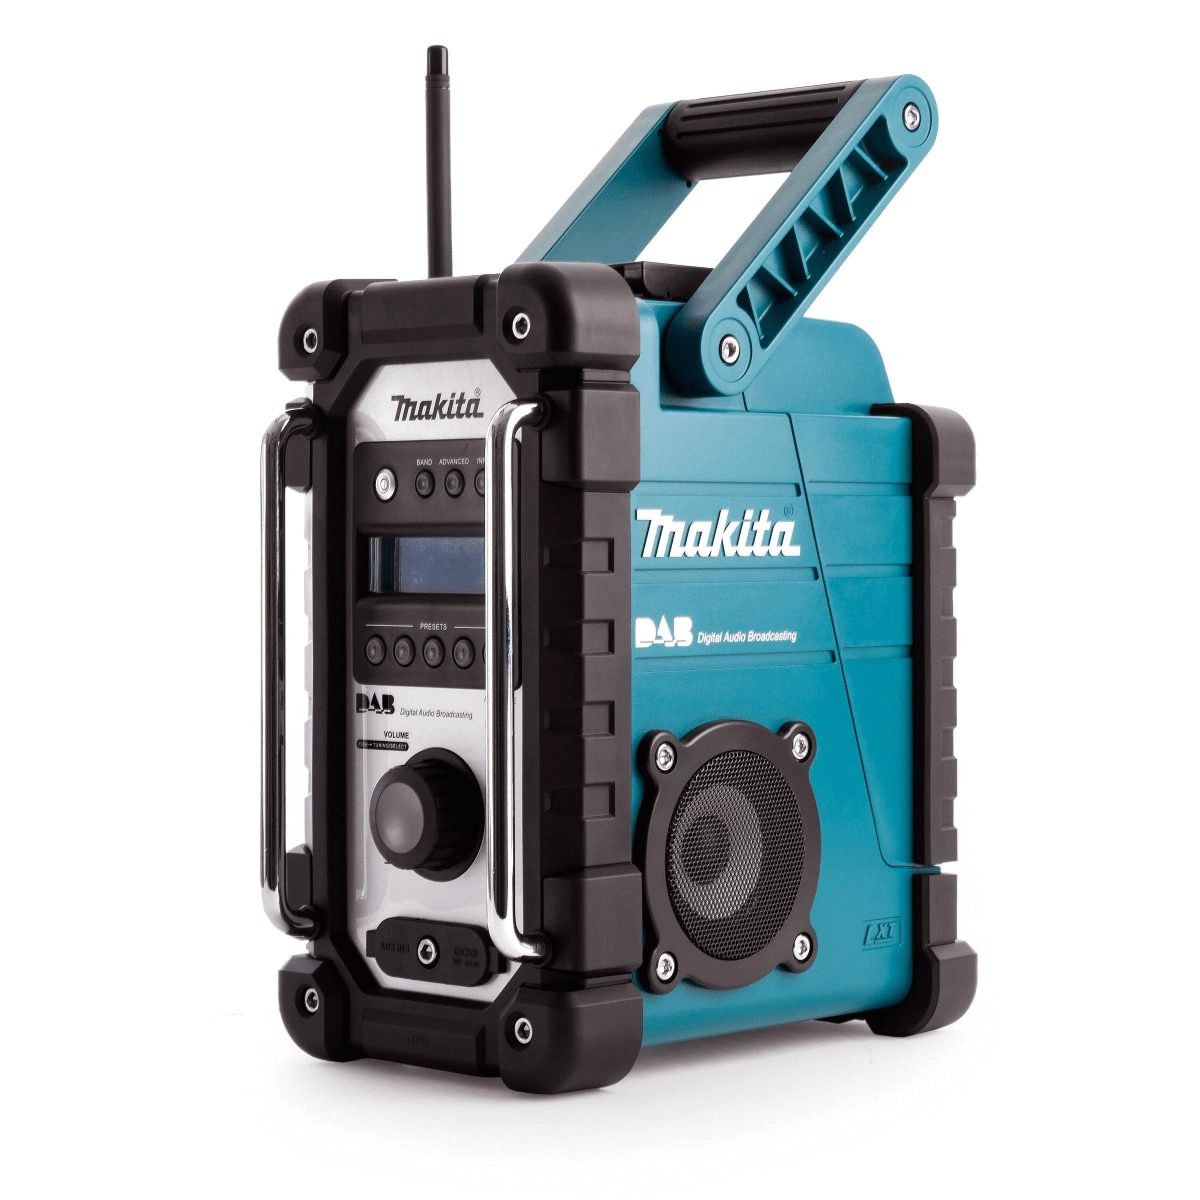 Makita DMR104 Job Site Radio Dab